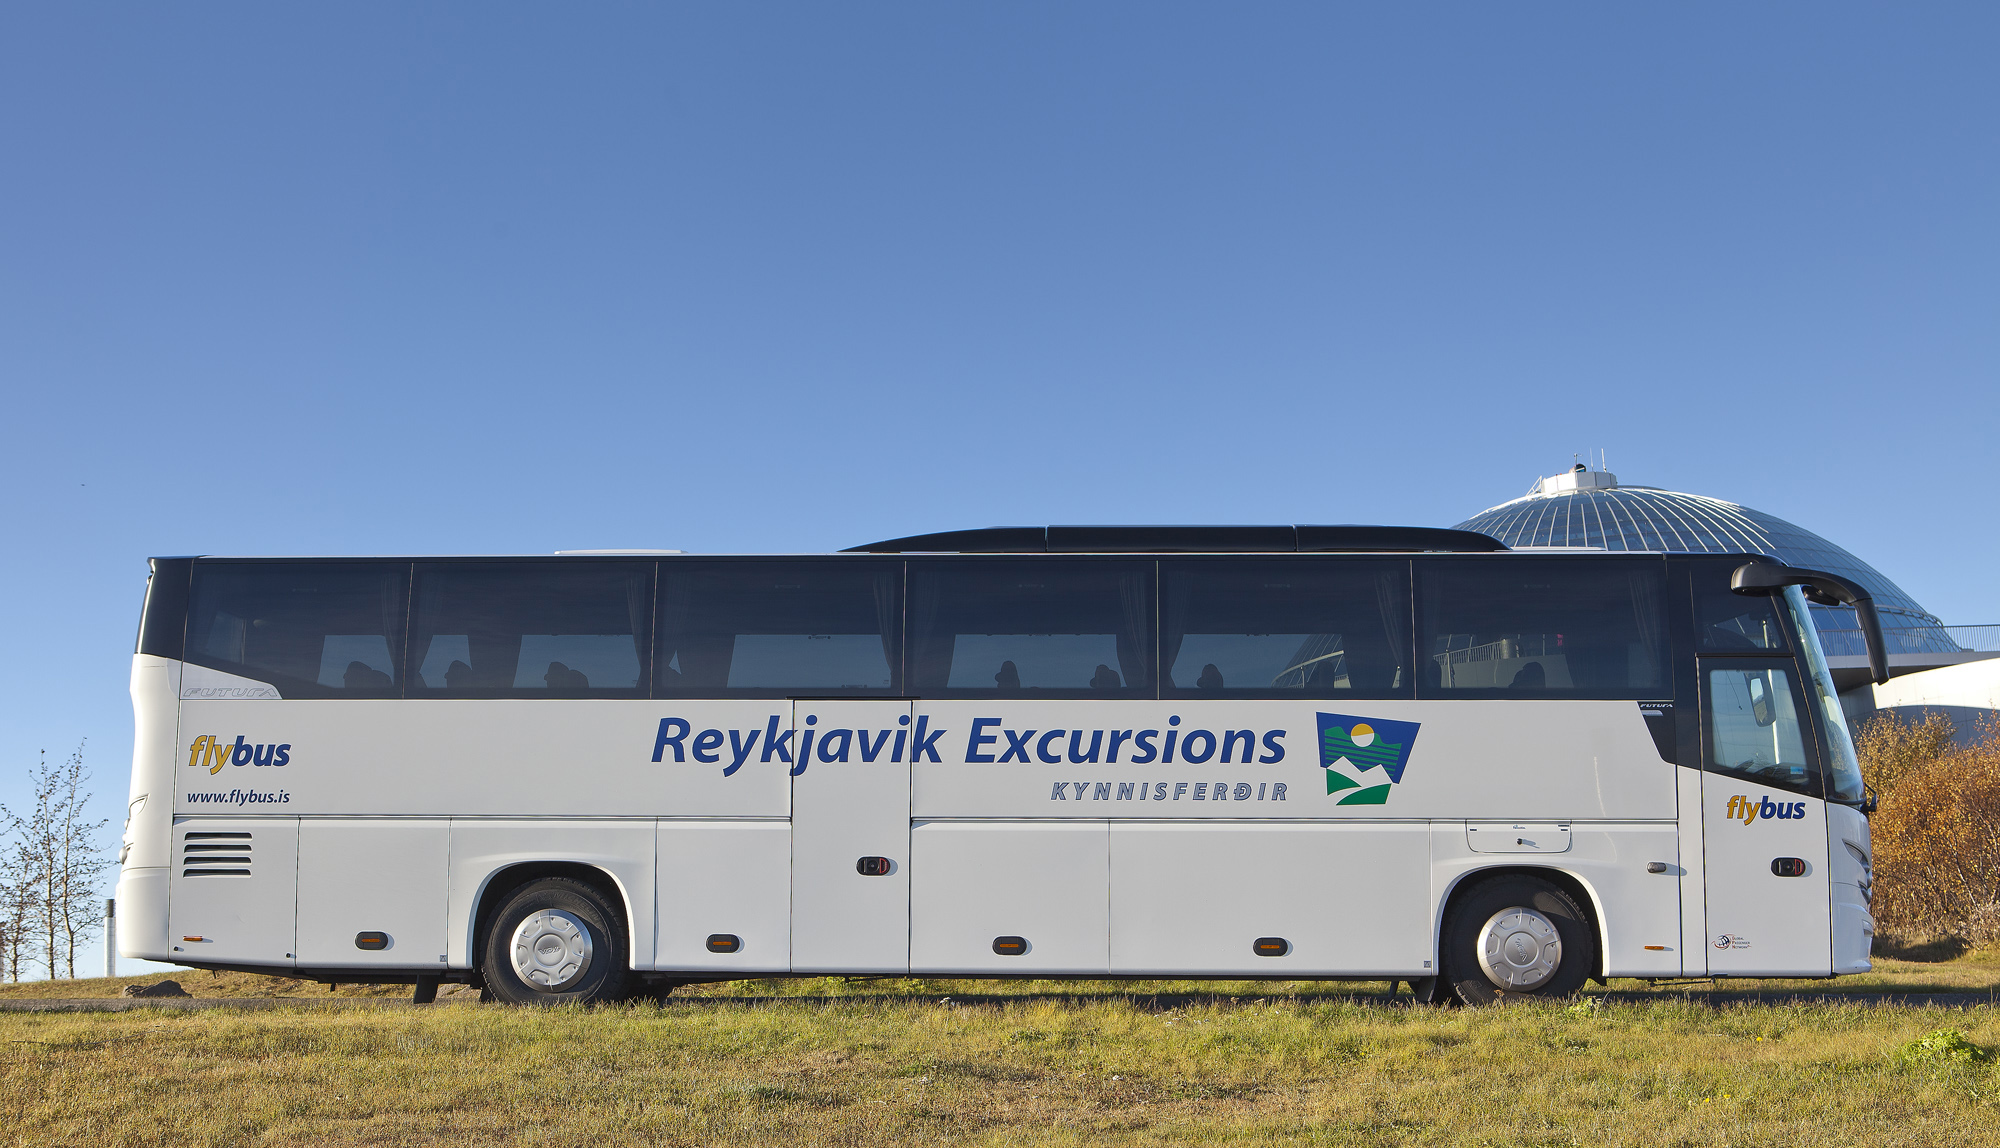 how to get to reykjavik from airport